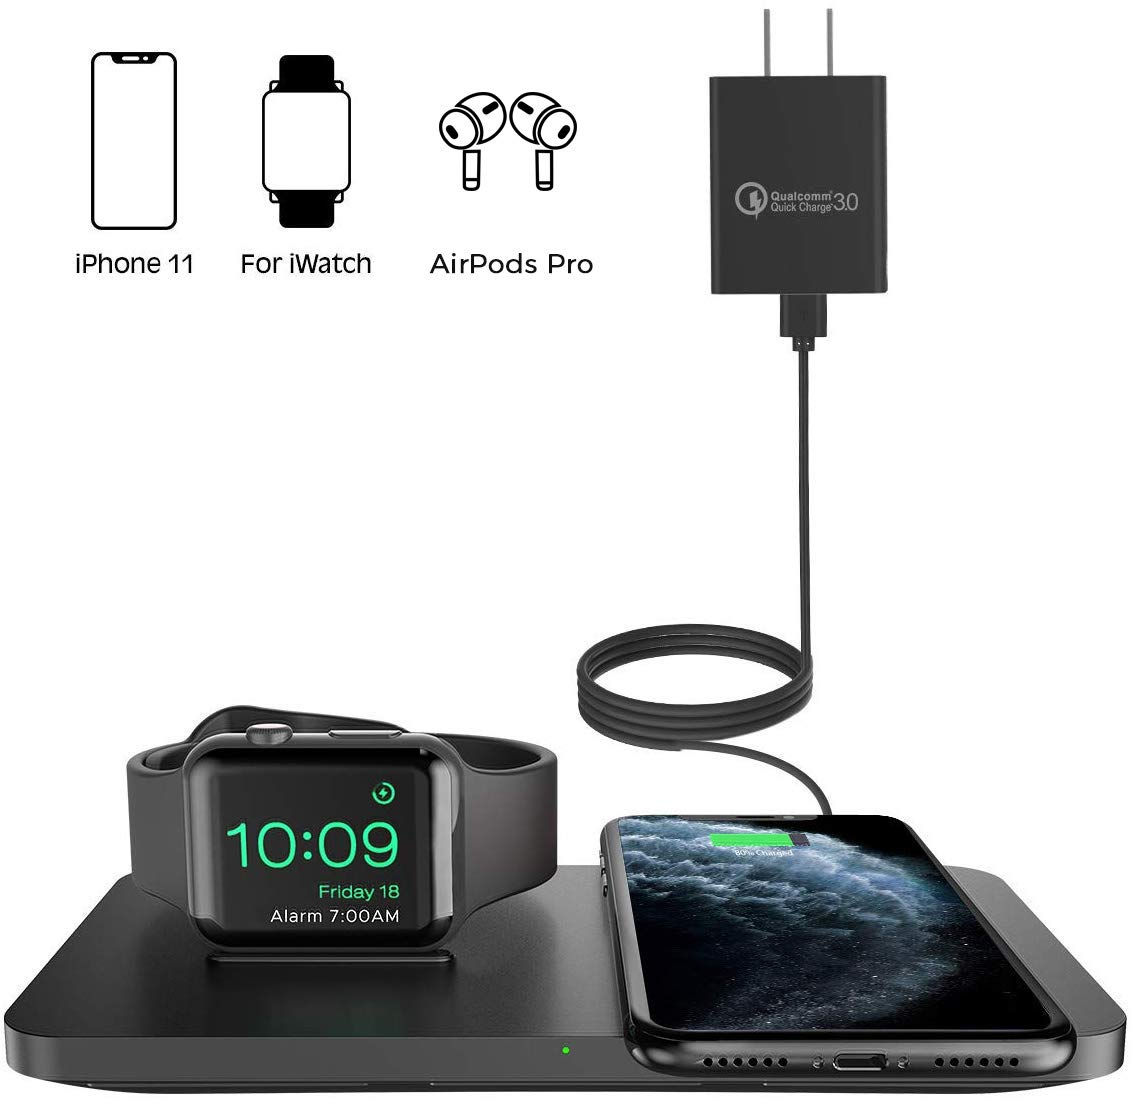 Wireless Charger with QC 30 Adapter Seneo 2 in 1 Wireless Charging Pad with iWatch Stand for iWatch